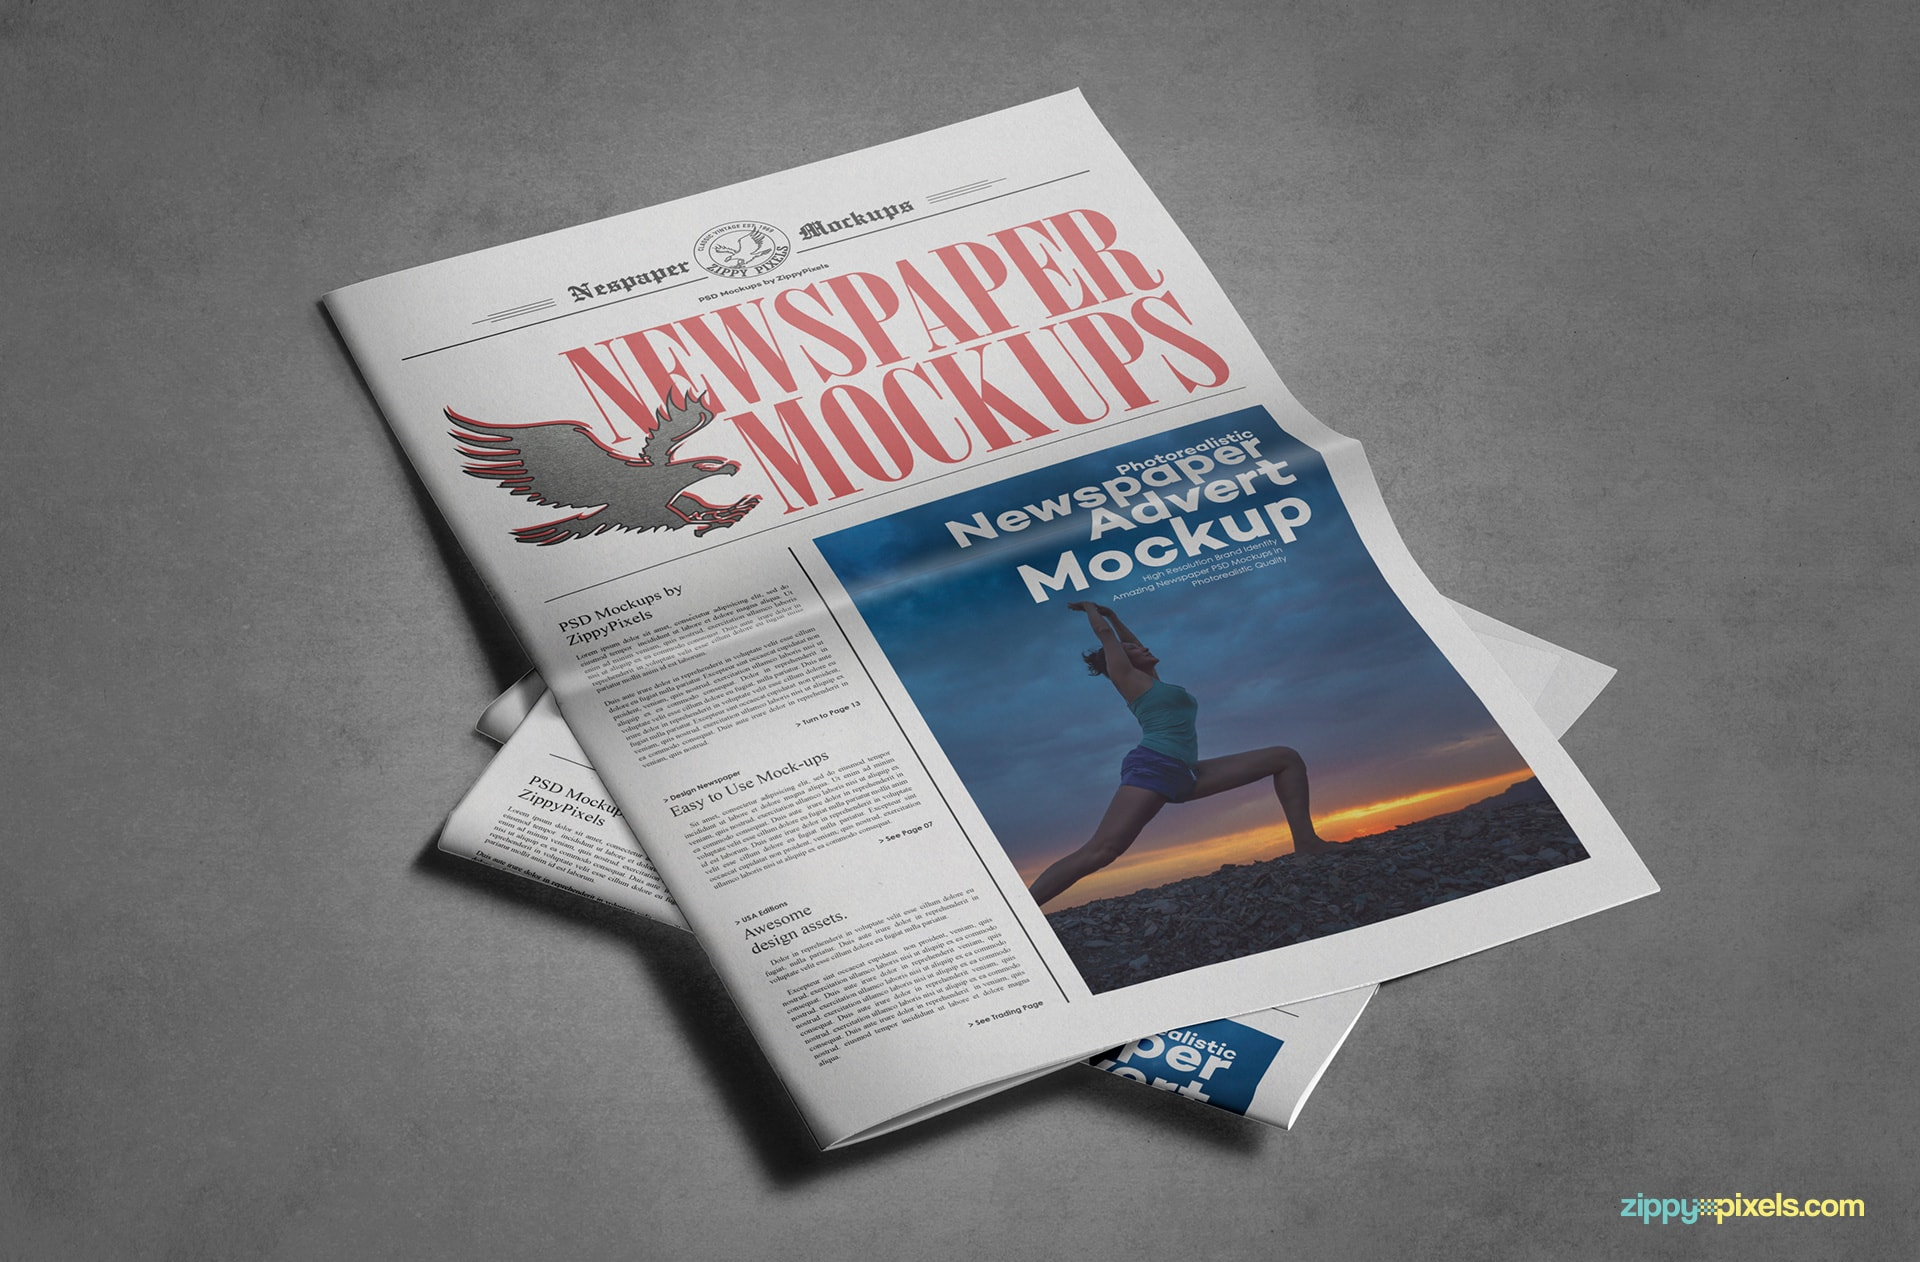 09-newspaper-psd-advertisement-mockups-824x542